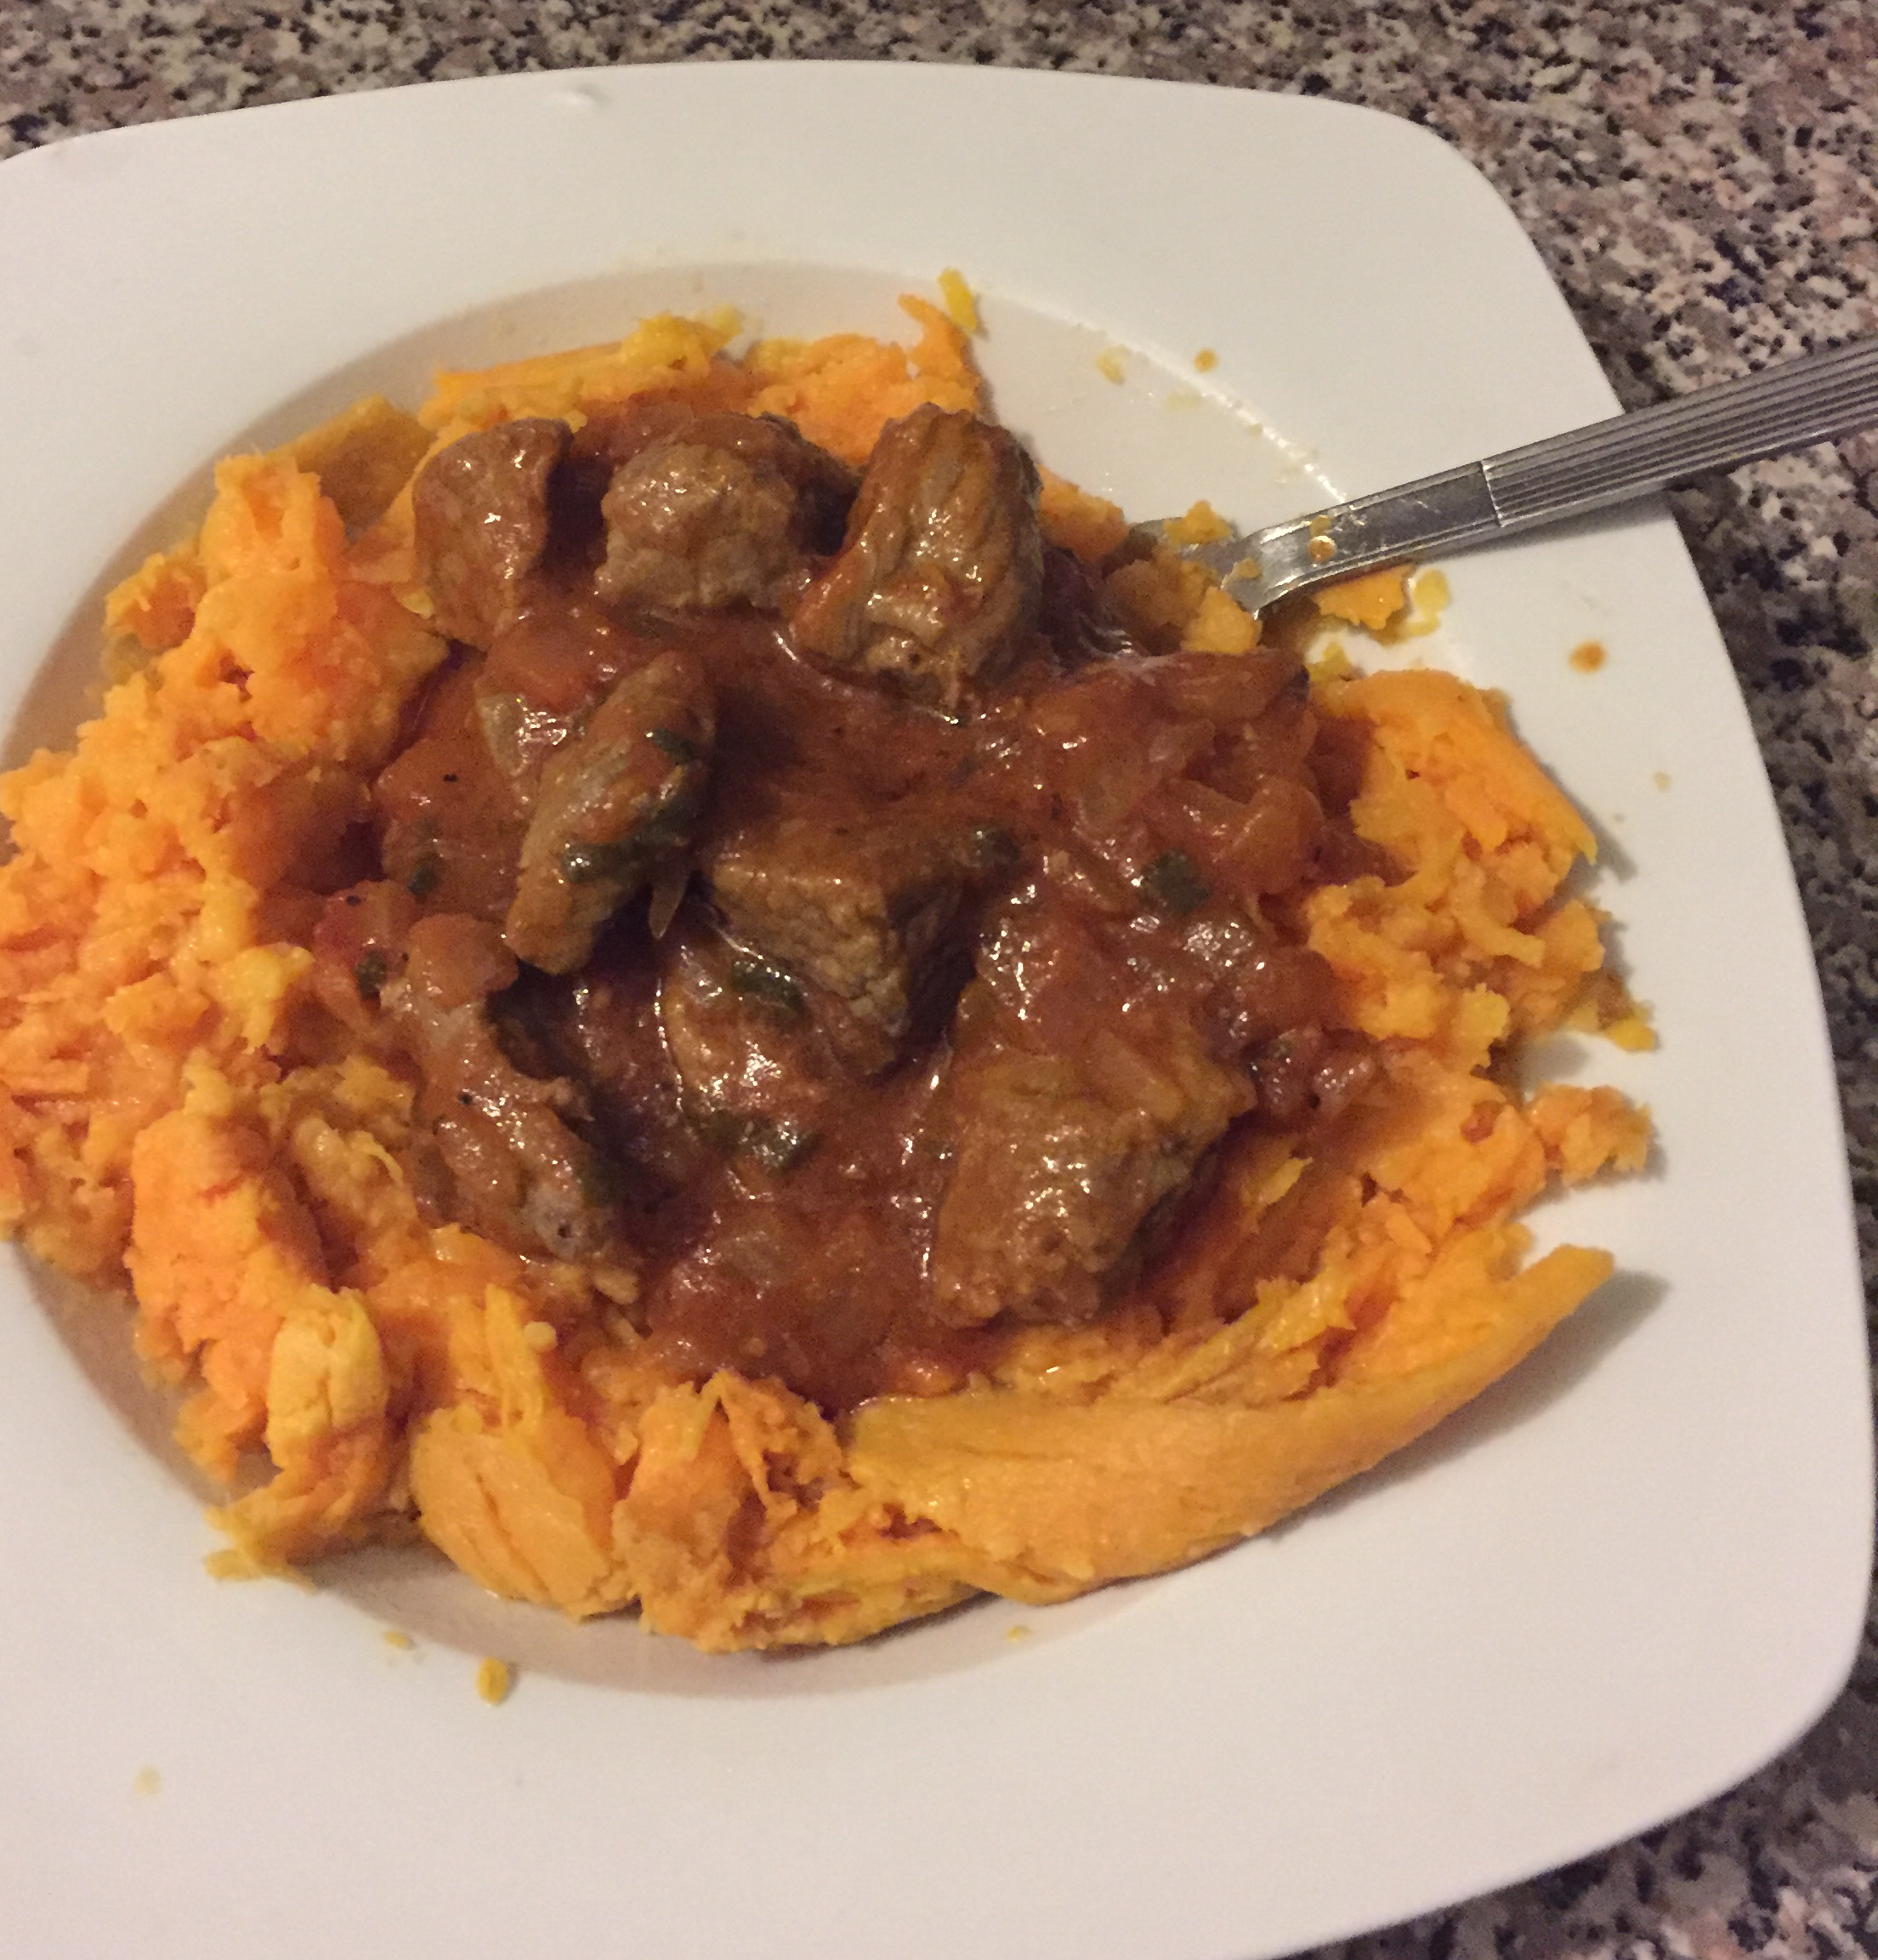 Red Chile Braised Beef Stew over Mashed Sweet Potatoes Michelle MC